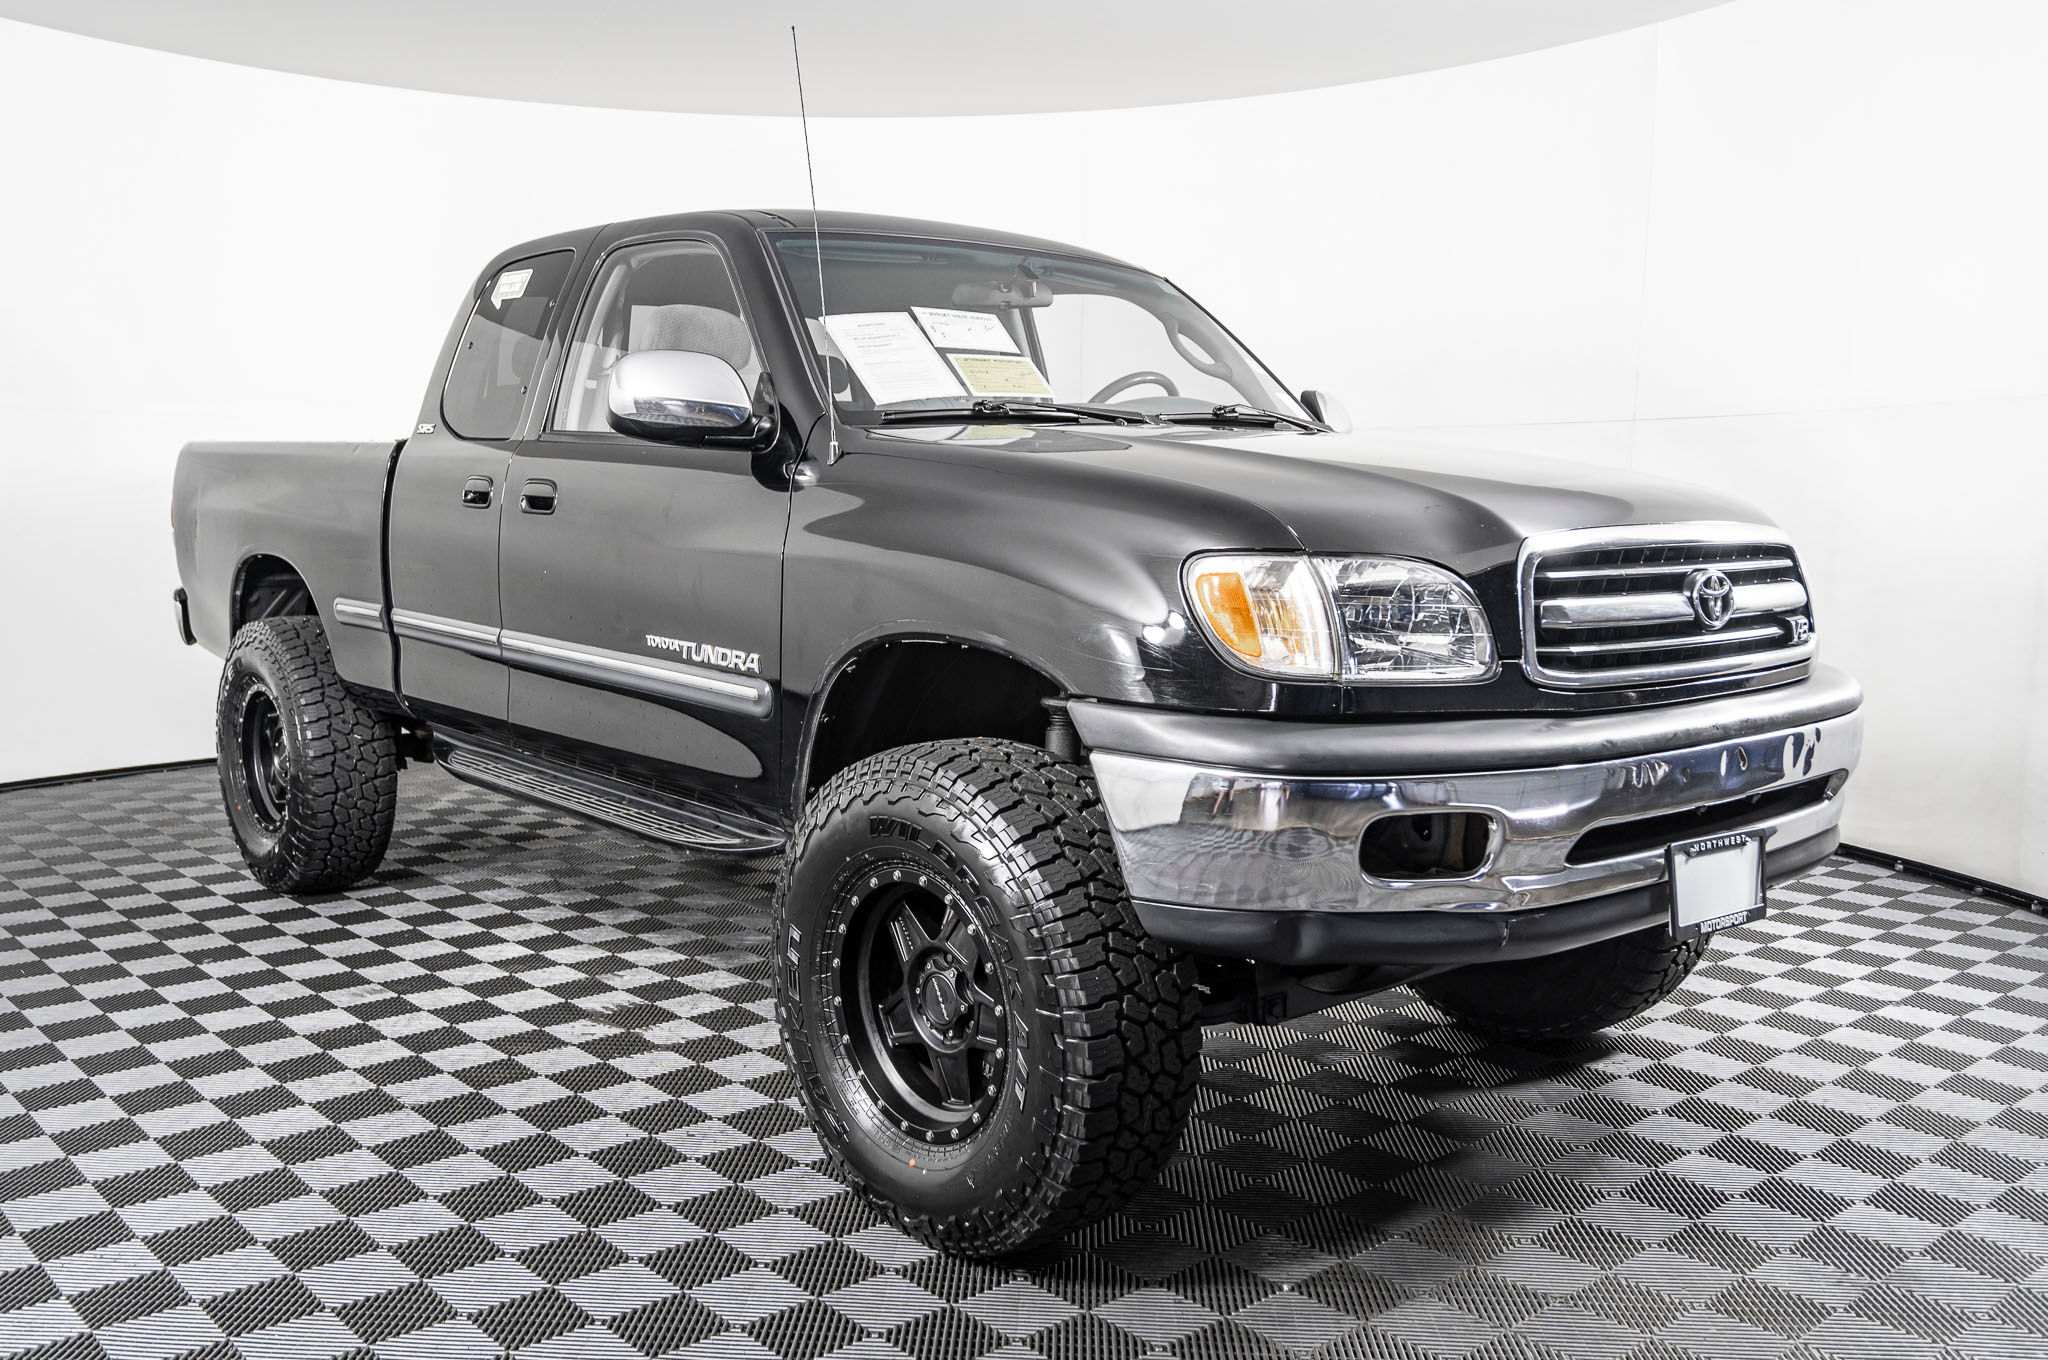 Used Lifted 2000 Toyota Tundra Sr5 4x4 Truck For Sale Northwest Motorsport